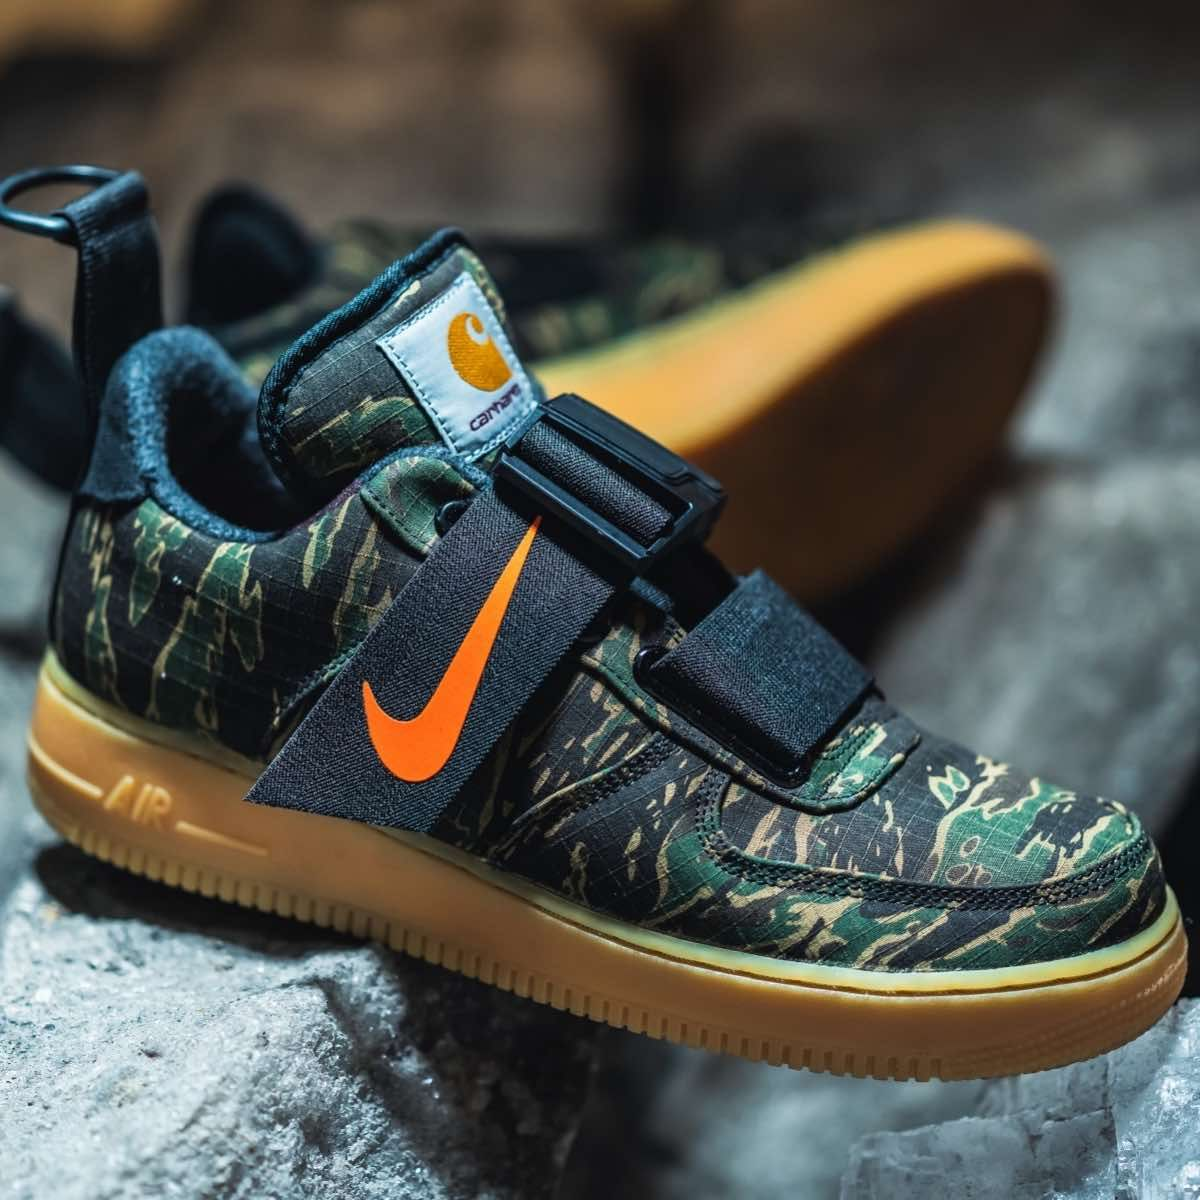 Ut Green 1 Nike Carhartt Brown Force Air Orange Low X Wip Prm sdBtrQCxho